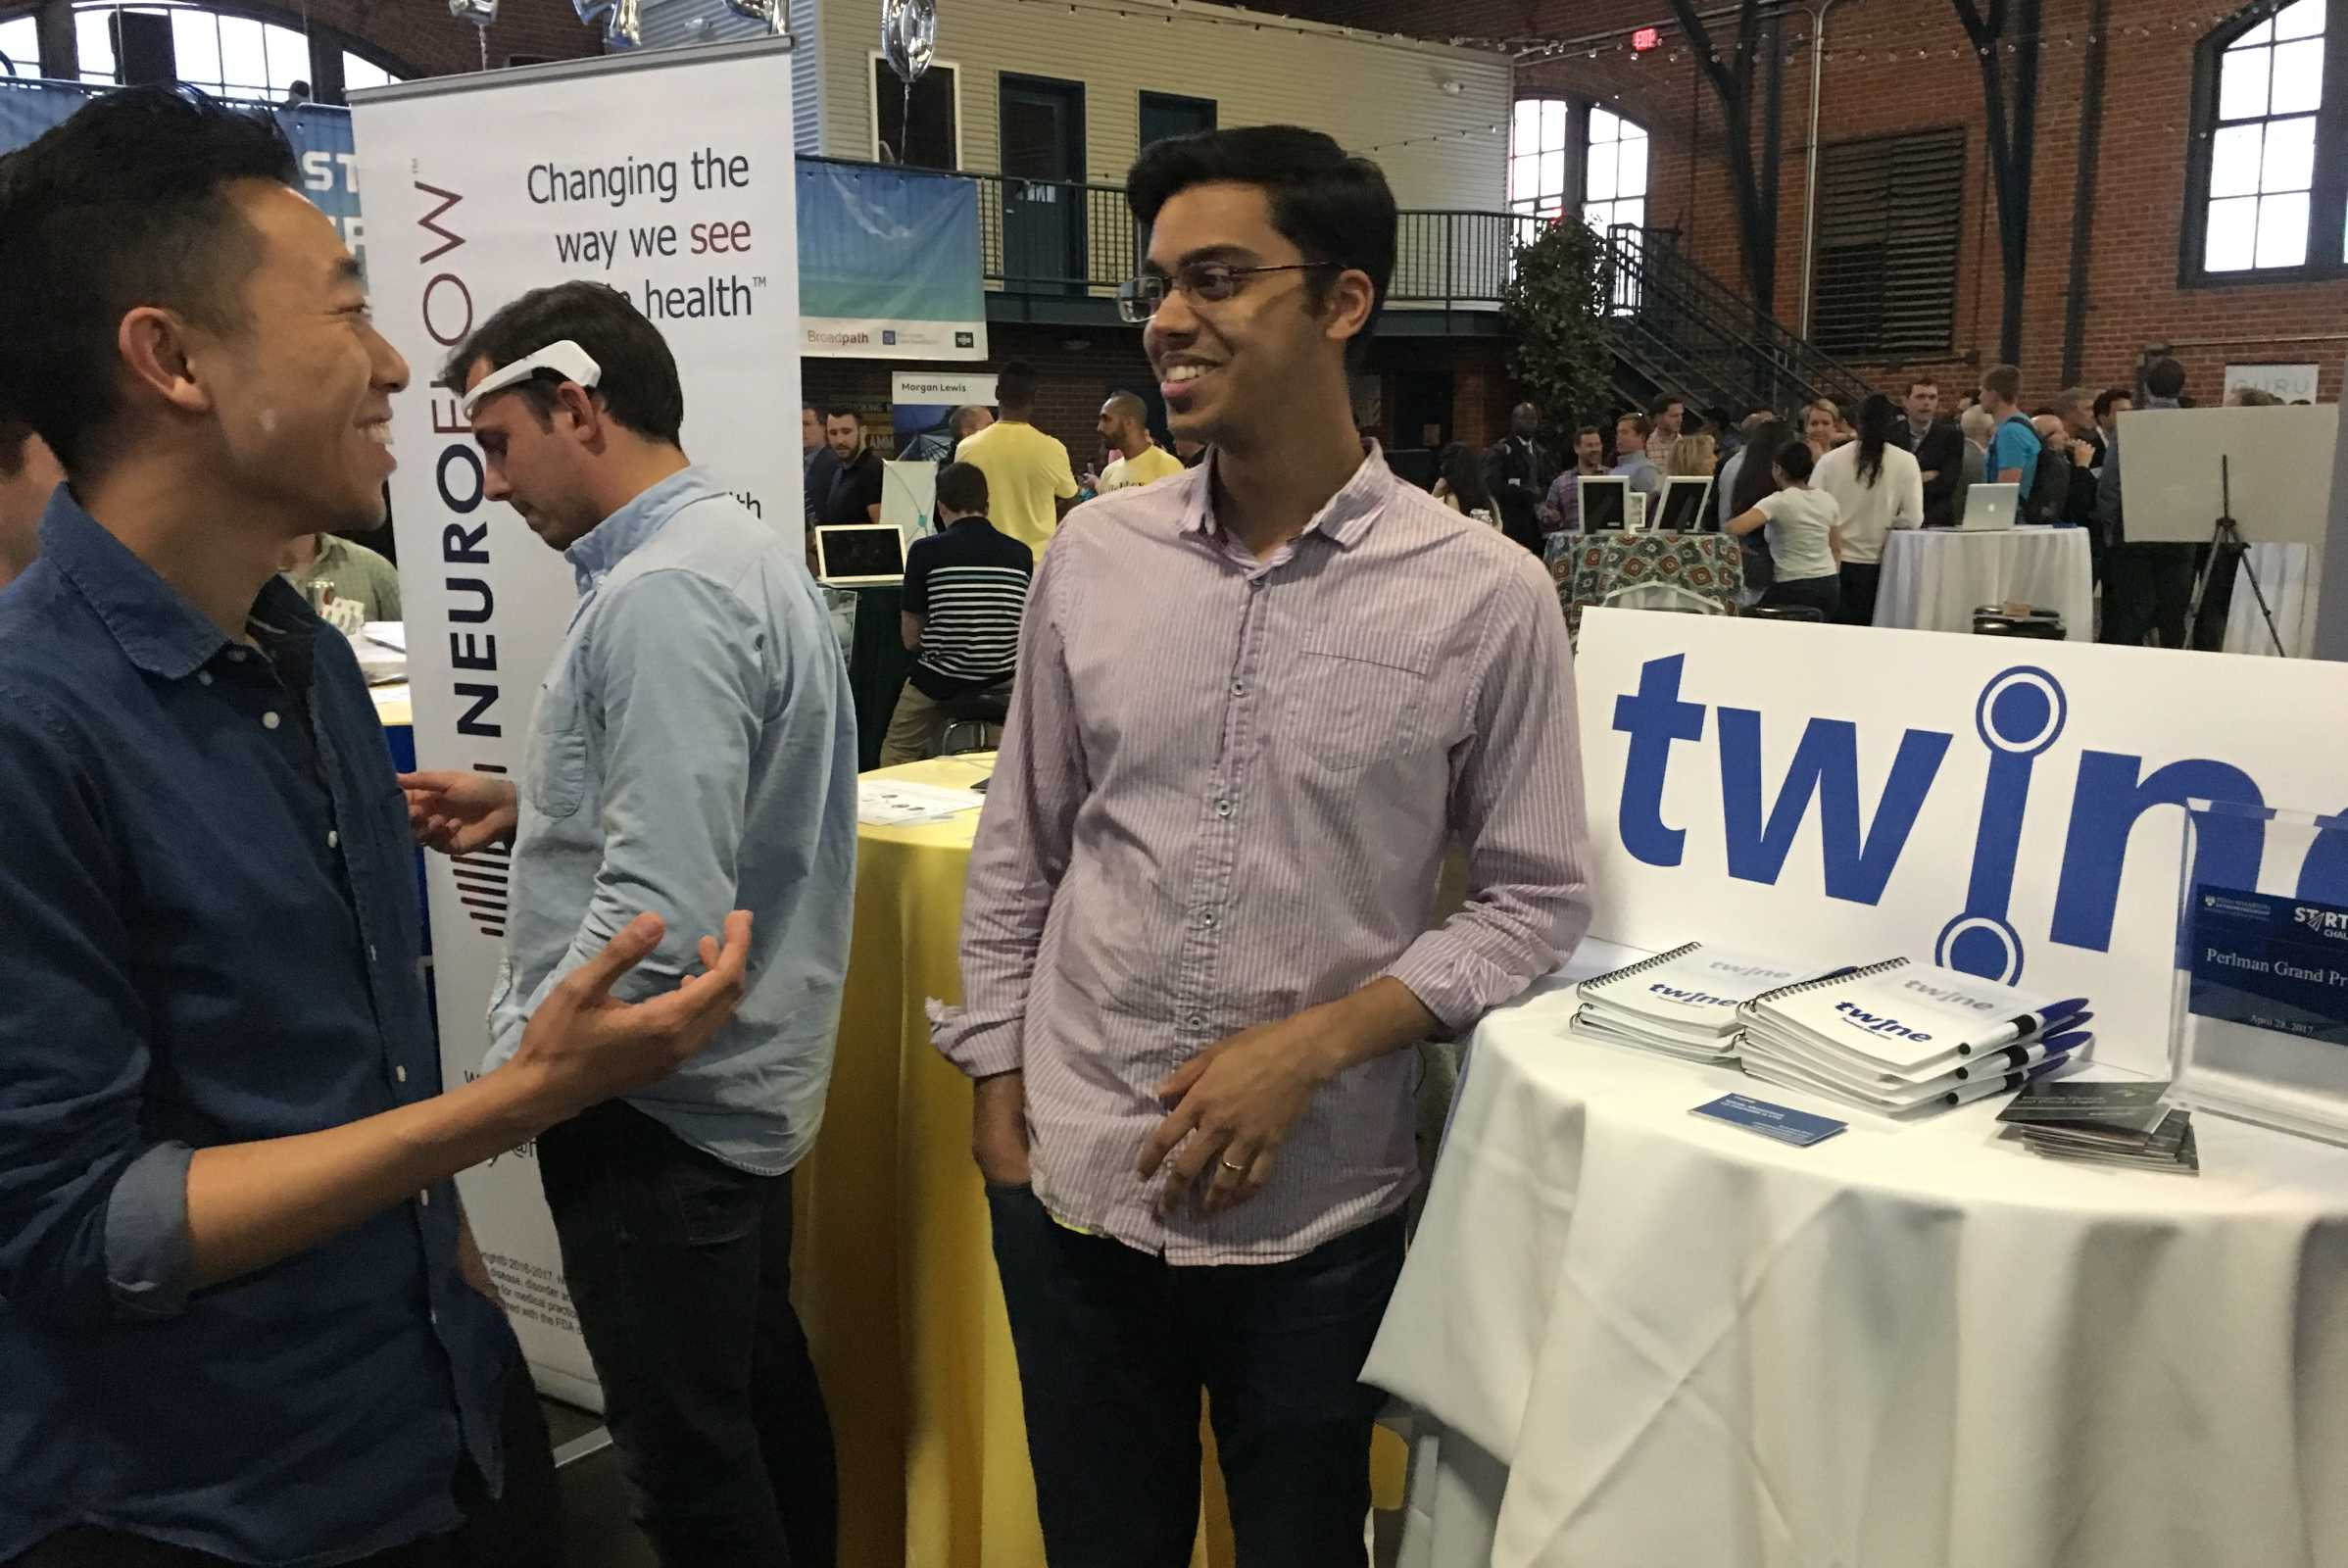 Joseph Quan (left) and Nikhil Srivastava took first place in the Penn Wharton Startup Showcase with Twine, their algorithmic solution for keeping employees engaged by moving them into more fulfilling new jobs.